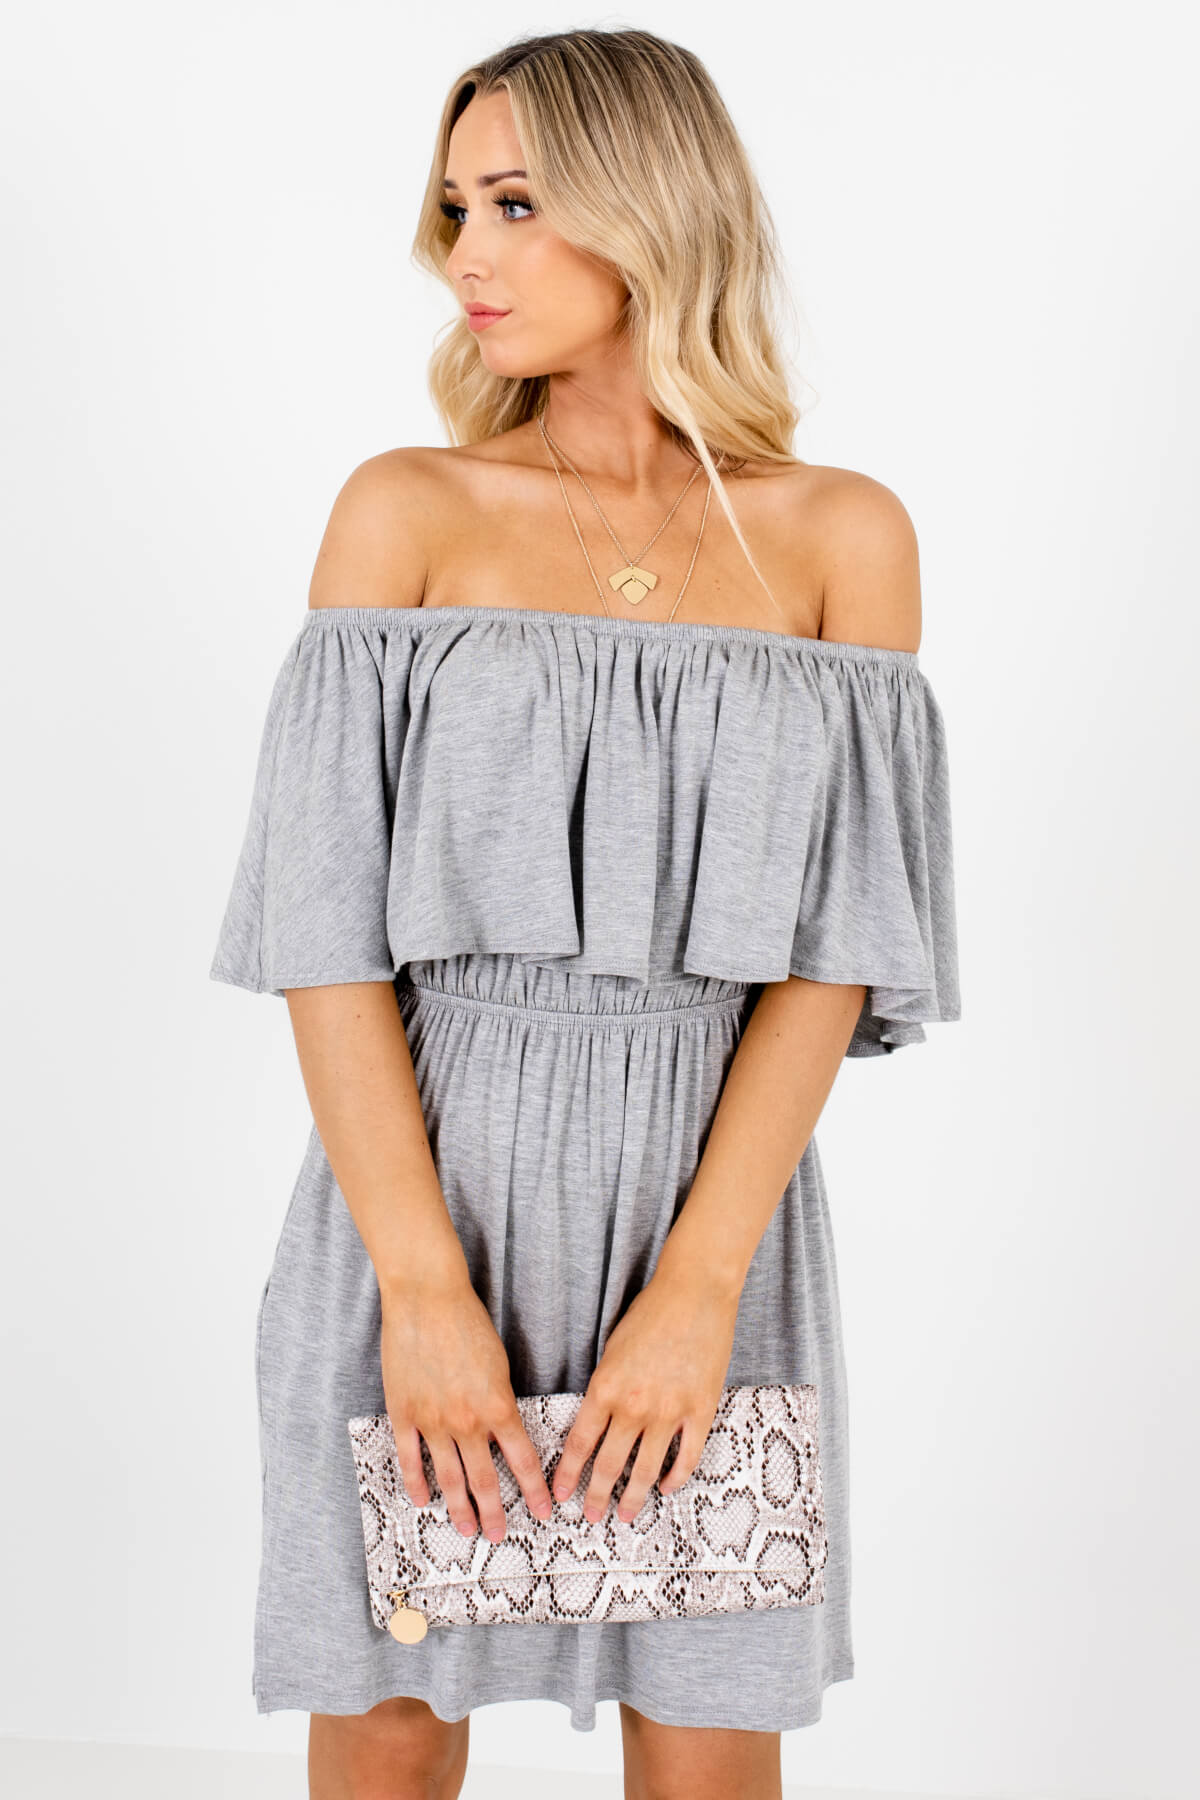 582d4e14547 Heather Gray Off Shoulder Elastic Waistband Boutique Mini Dresses